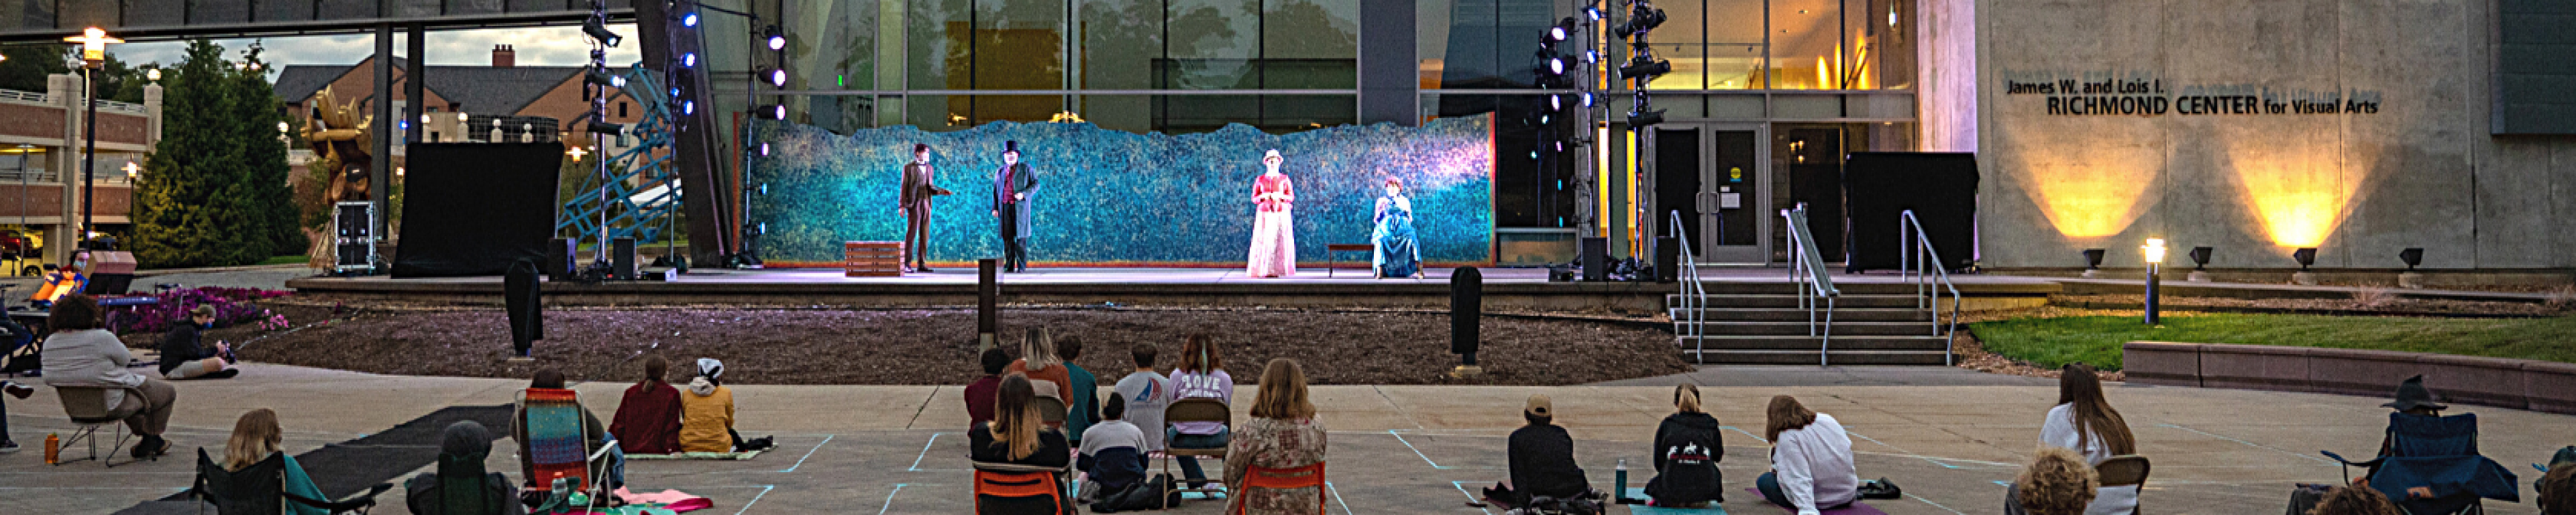 photos of an outdoor theatre show performing in front of a building.